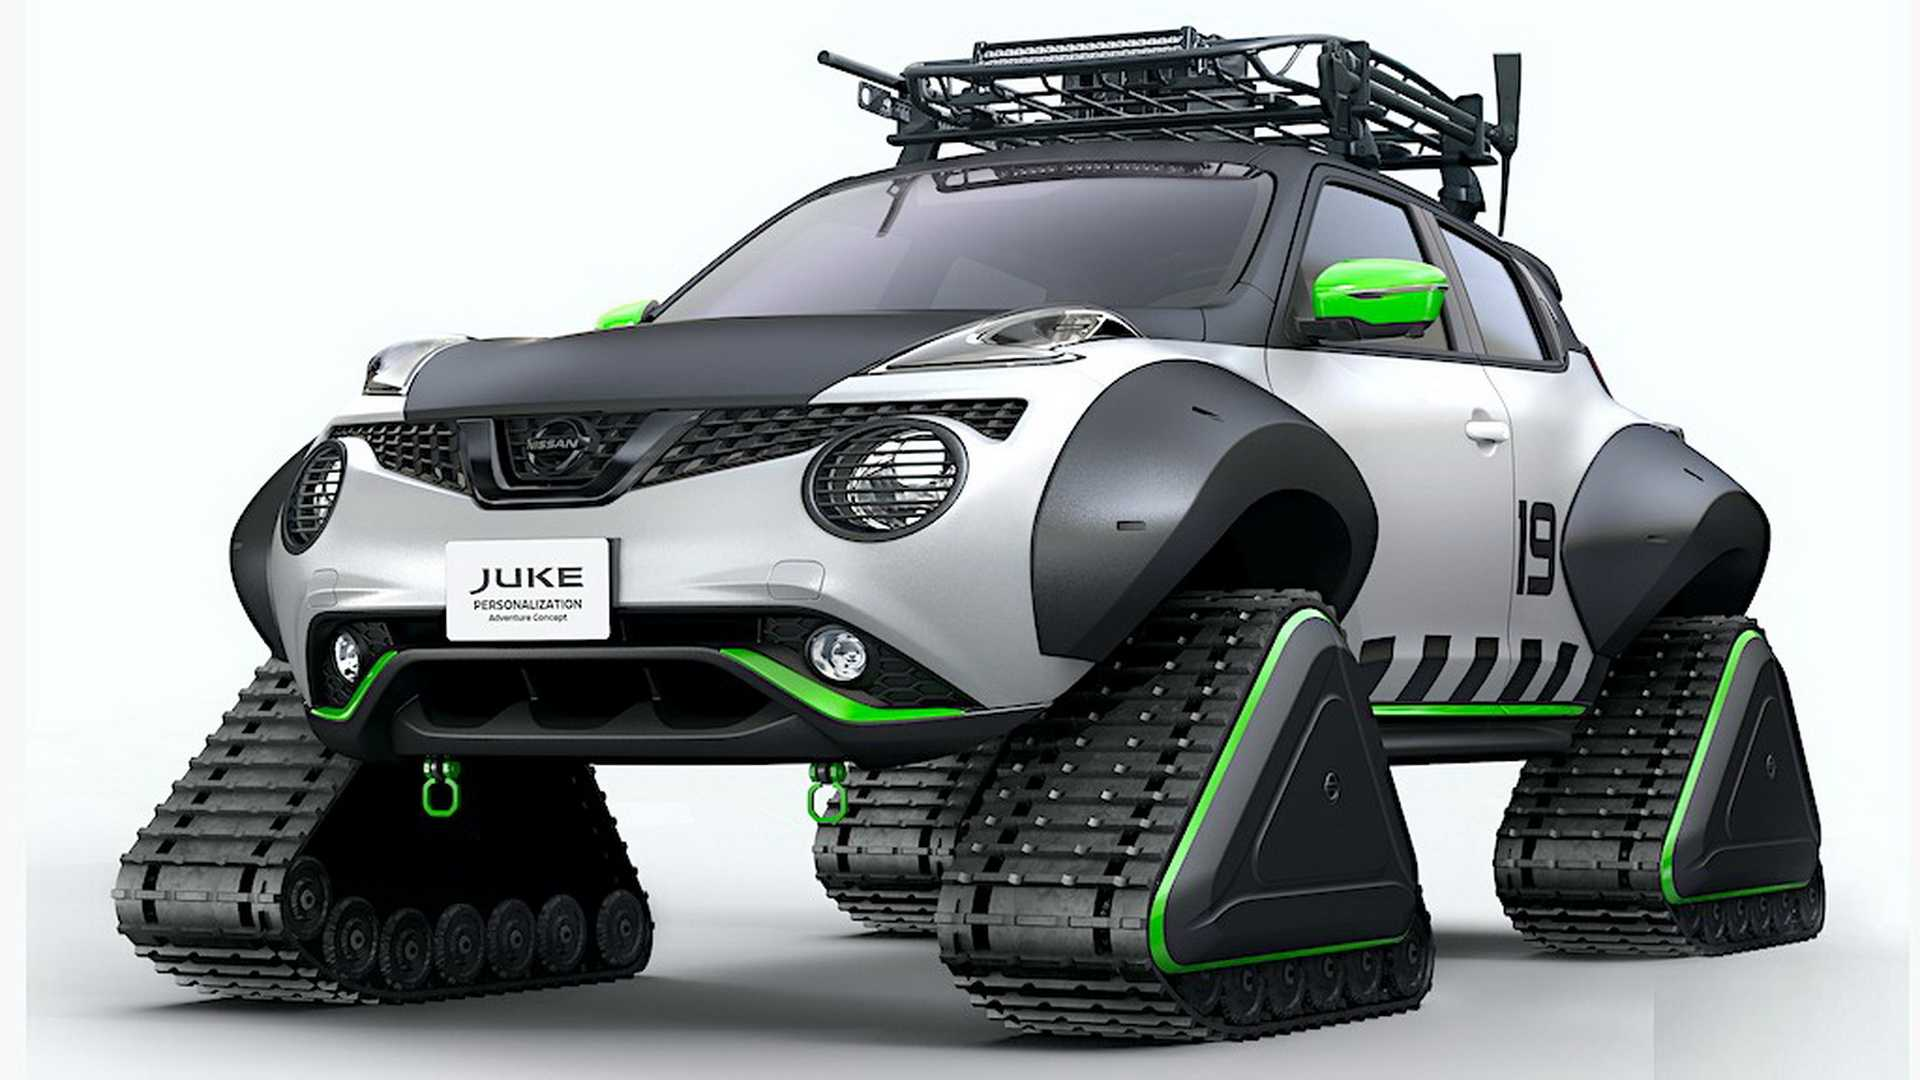 nissan-juke-with-snow-tracks-is-dreaming-of-fresh-powder-131264_1